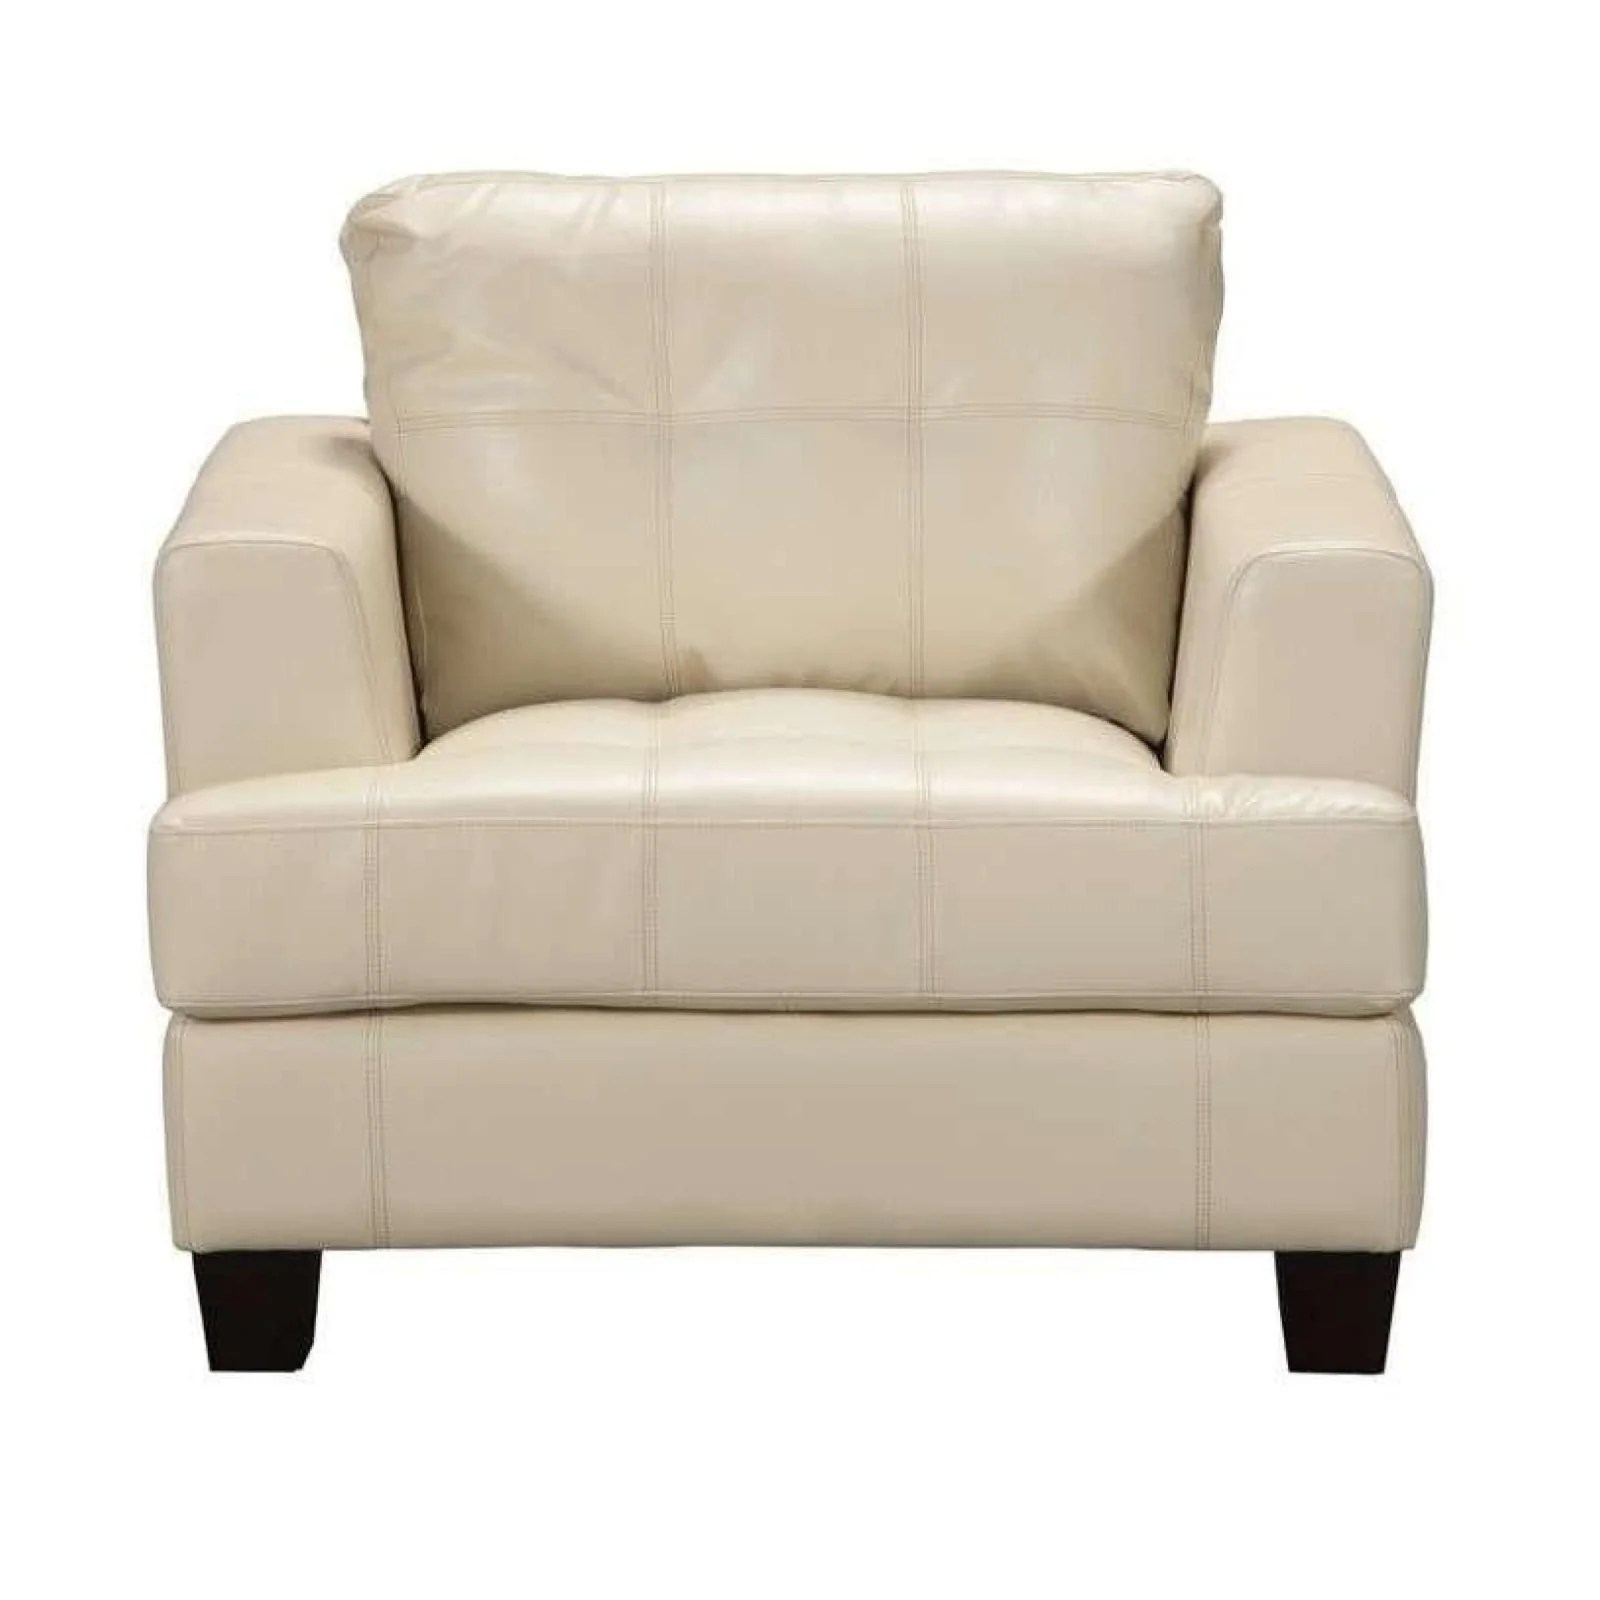 cream leather accent chairs design chair egg samuel  adams furniture